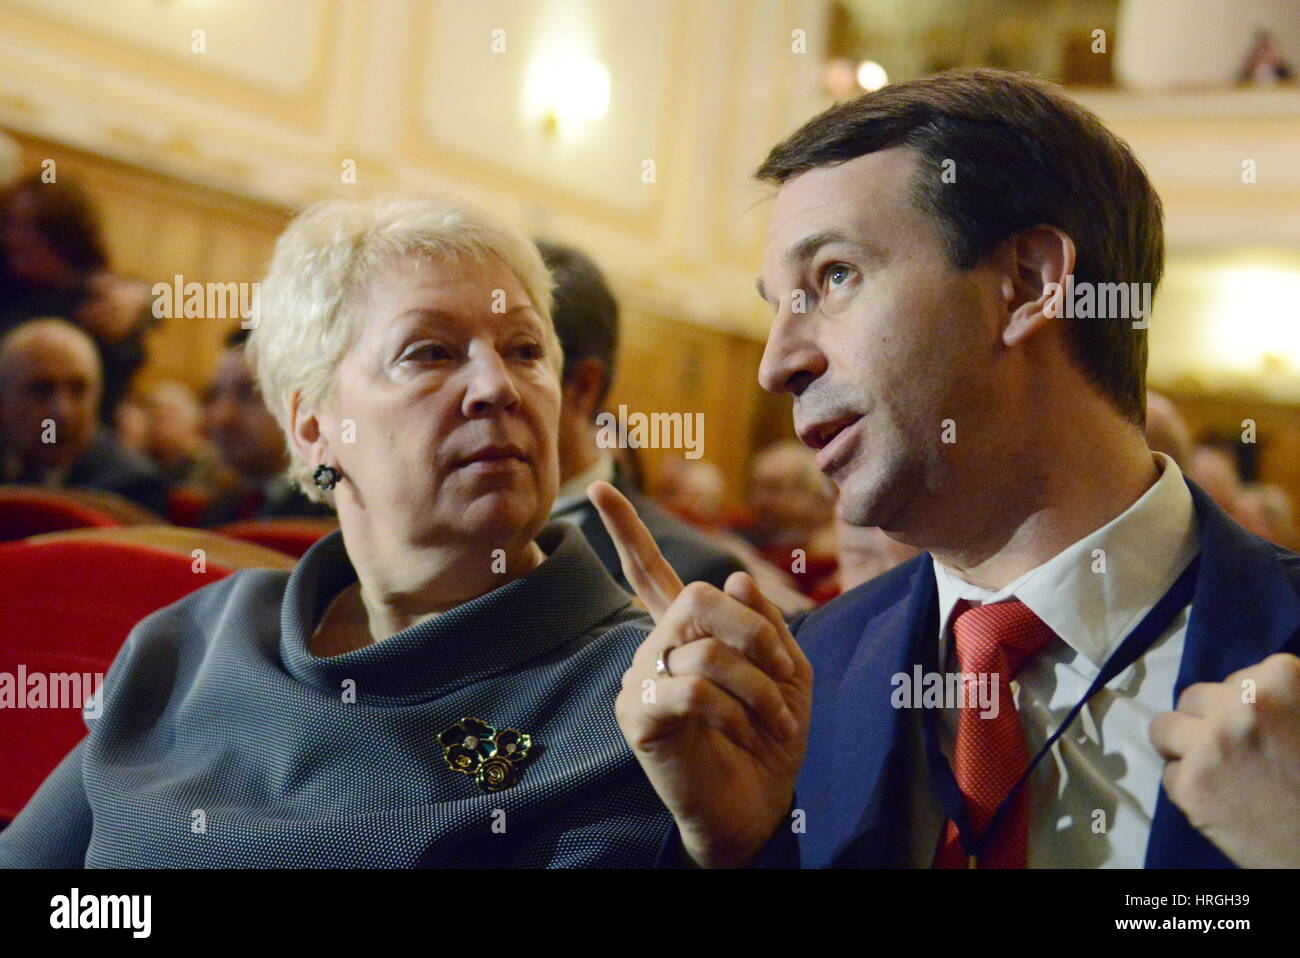 Moscow, Russia. 2nd Mar, 2017. Russia's Science and Education Minister Olga Vasilyeva (L) and her deputy Grigory - Stock Image